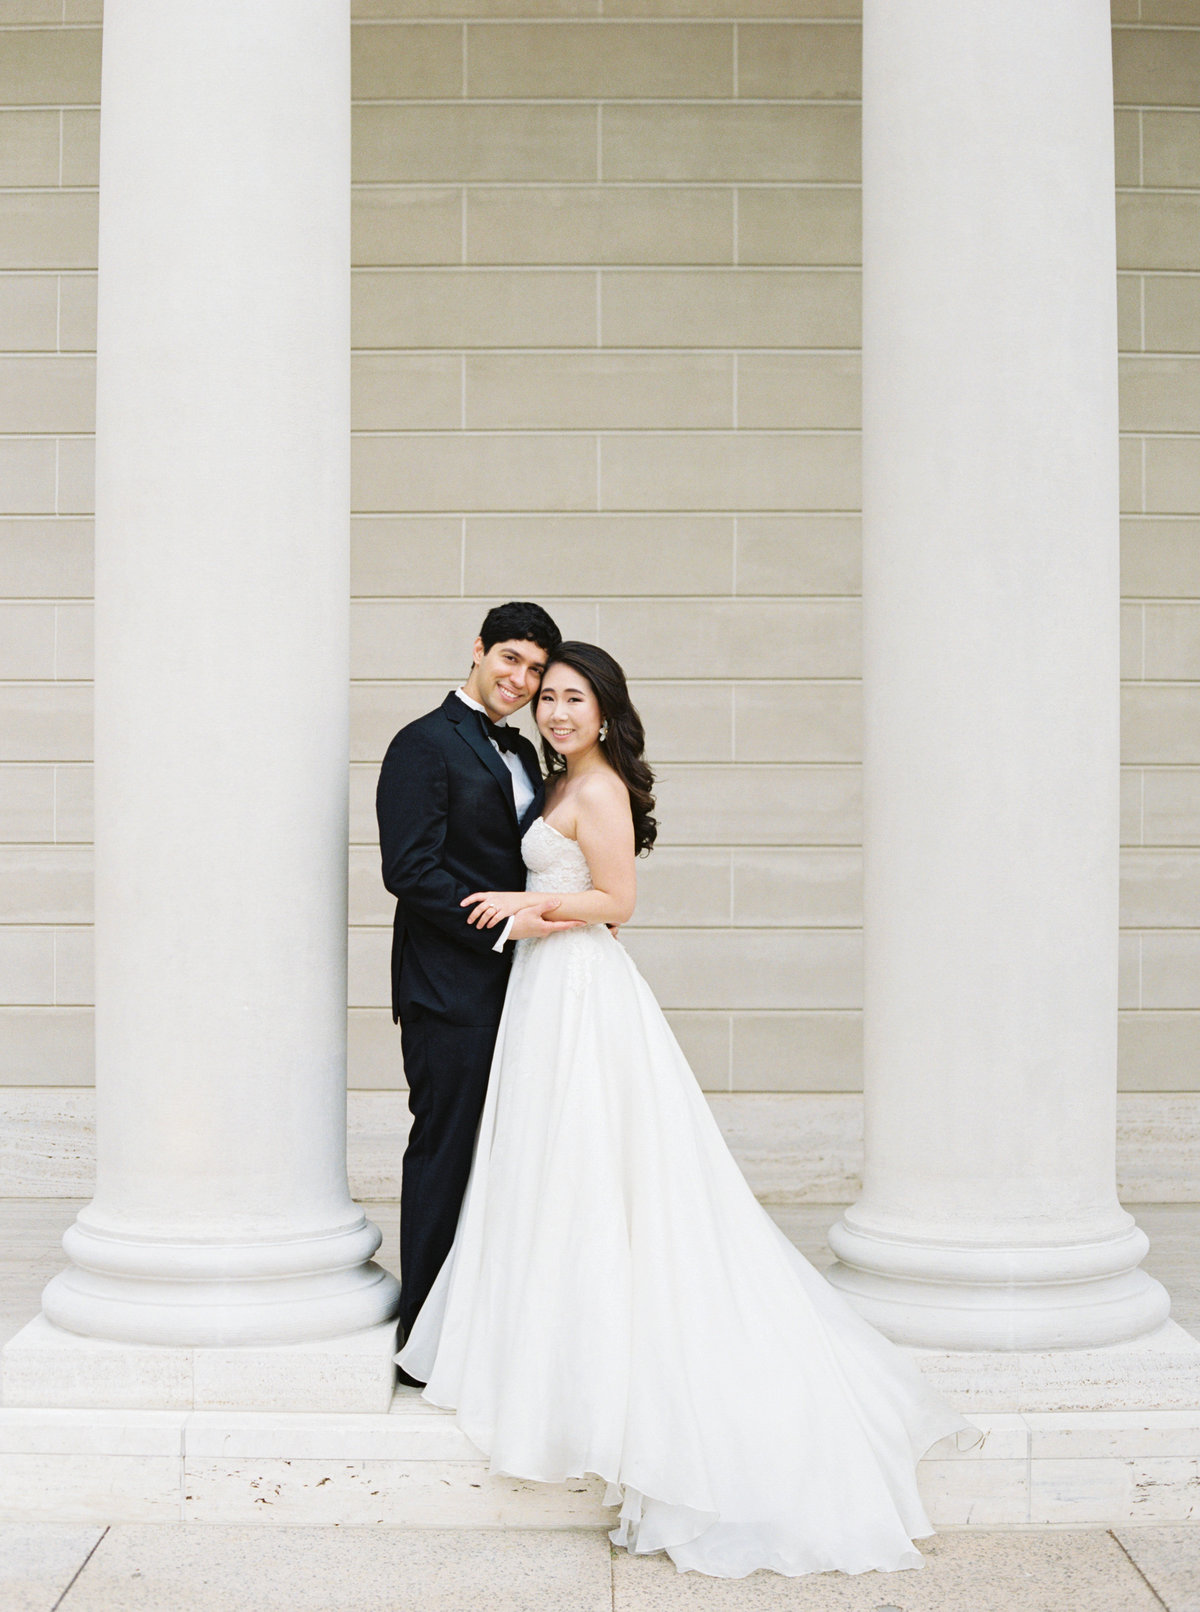 Diana + Pablo San Francisco California Legion of Honor Museum Wedding Session | Cassie Valente Photography 0049